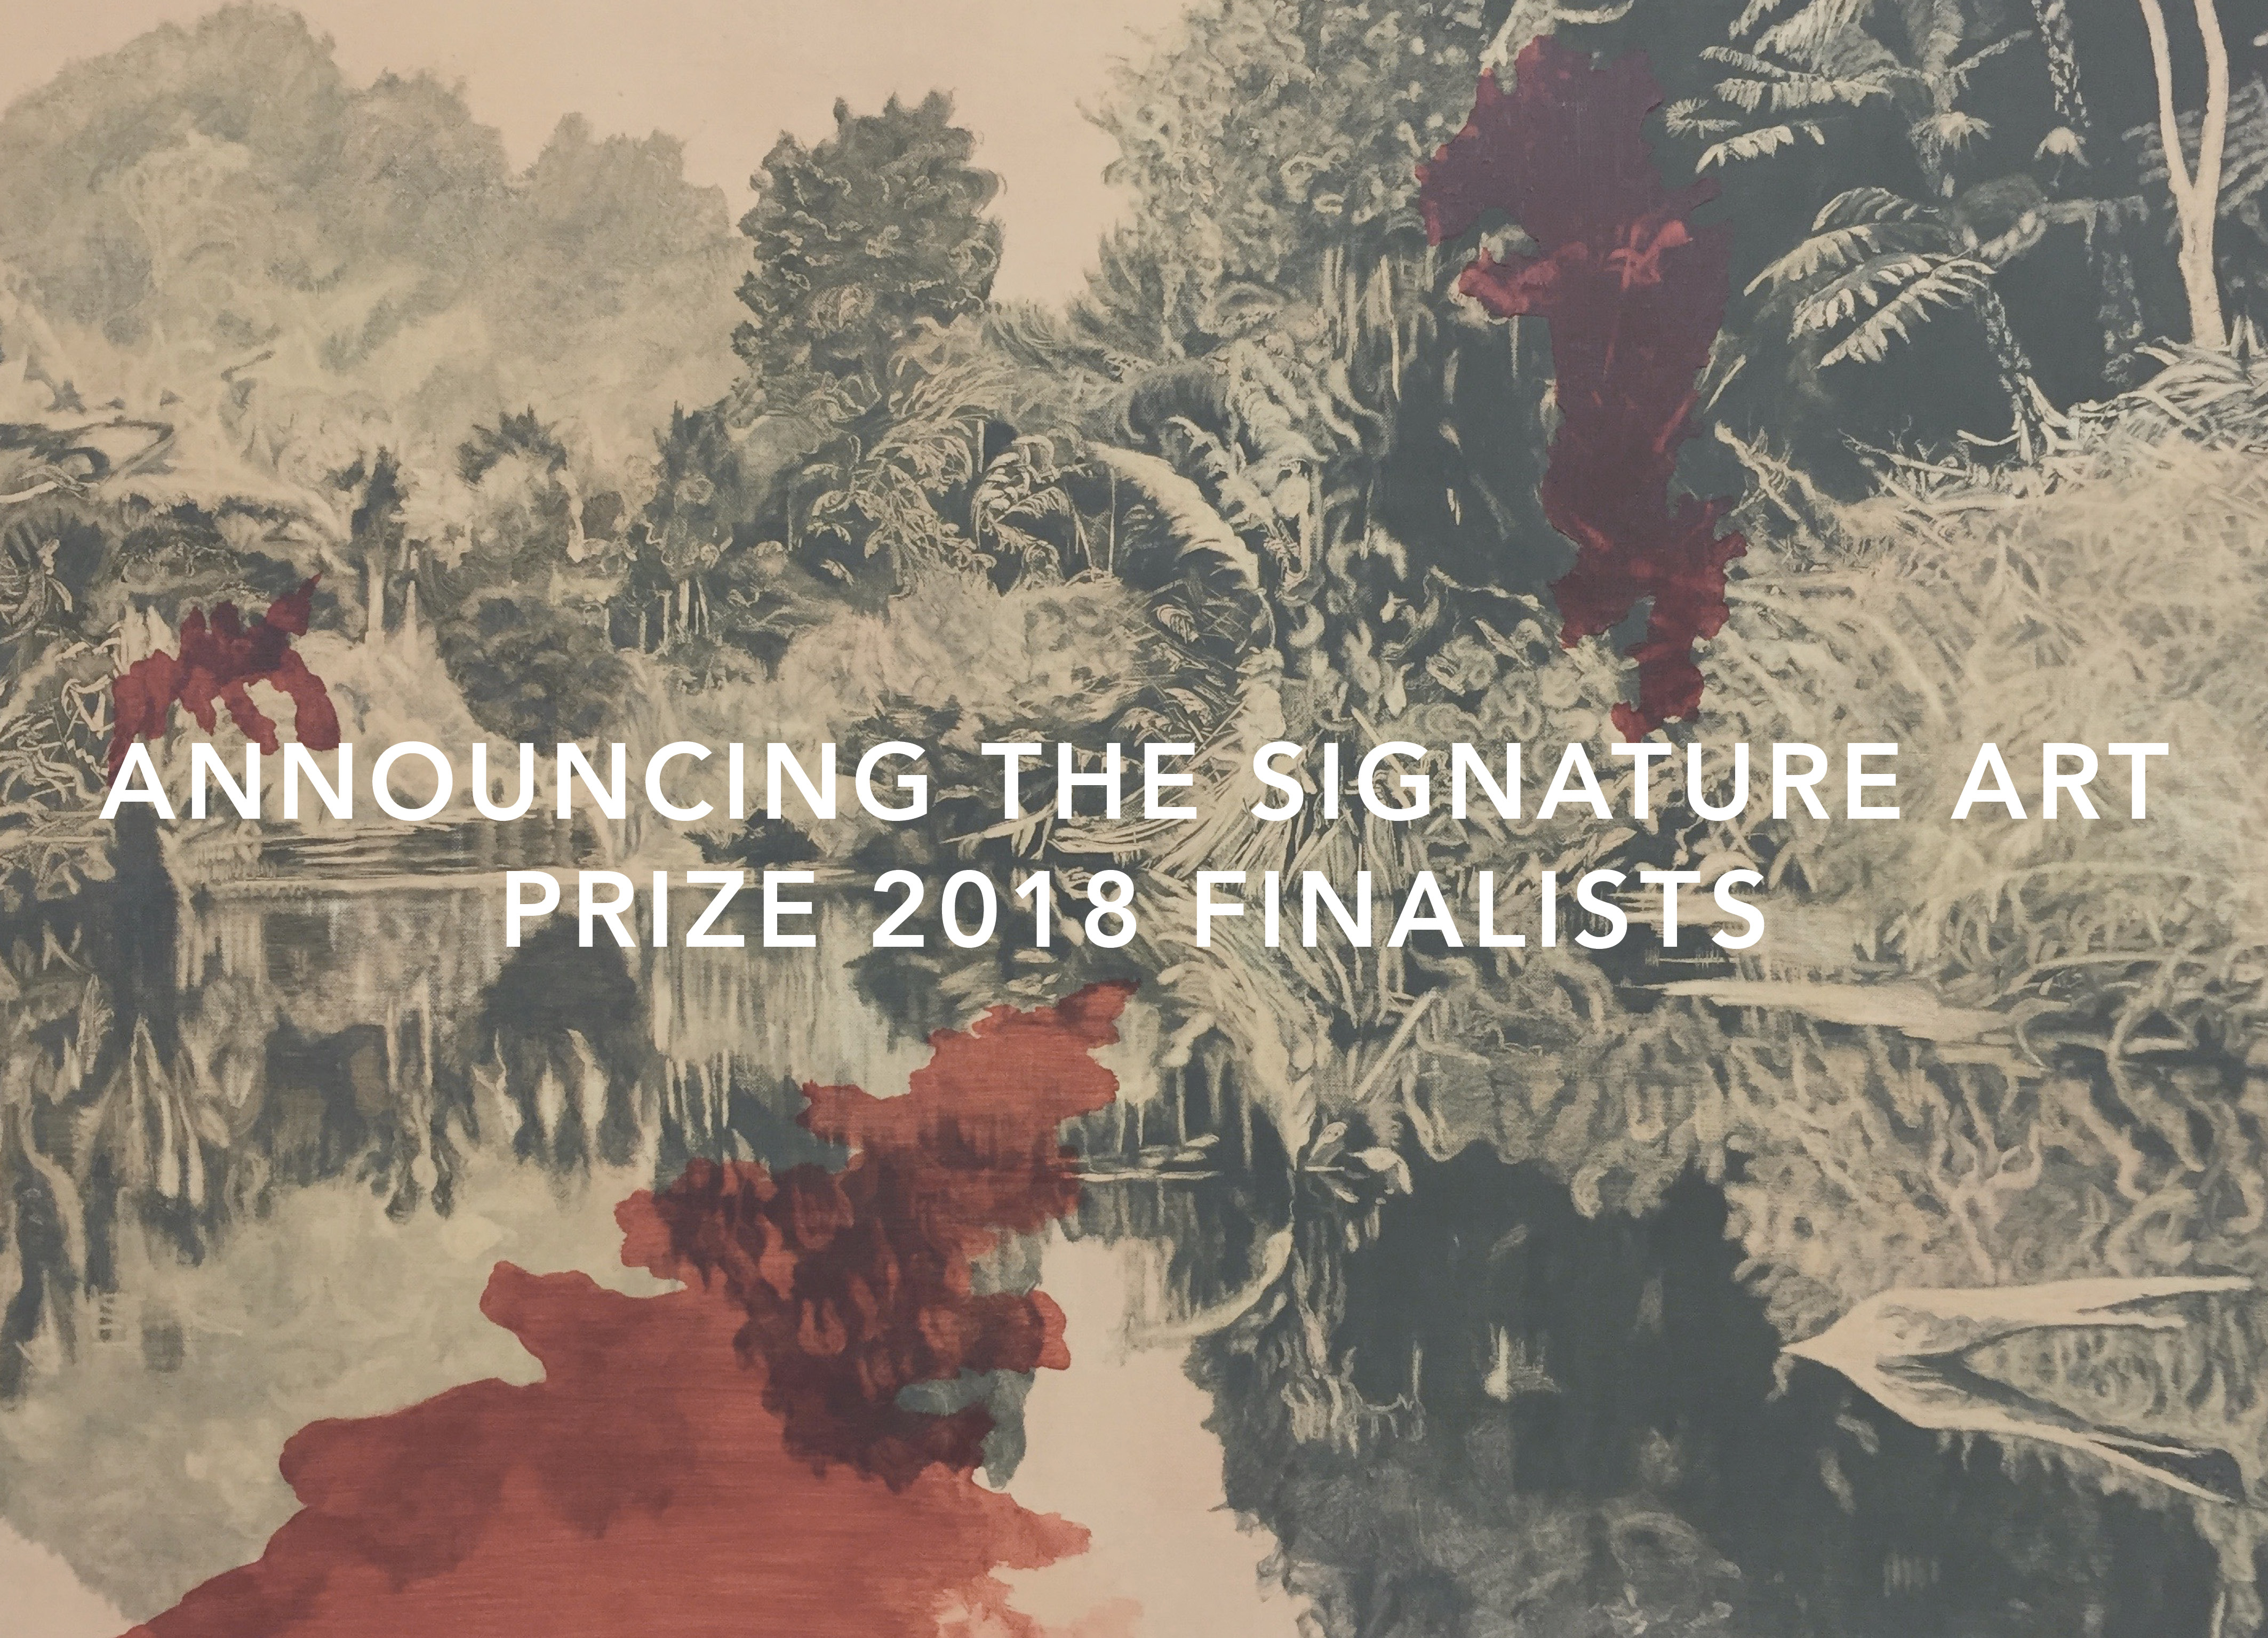 Announcing the Signature Art Prize 2018 Finalists | The